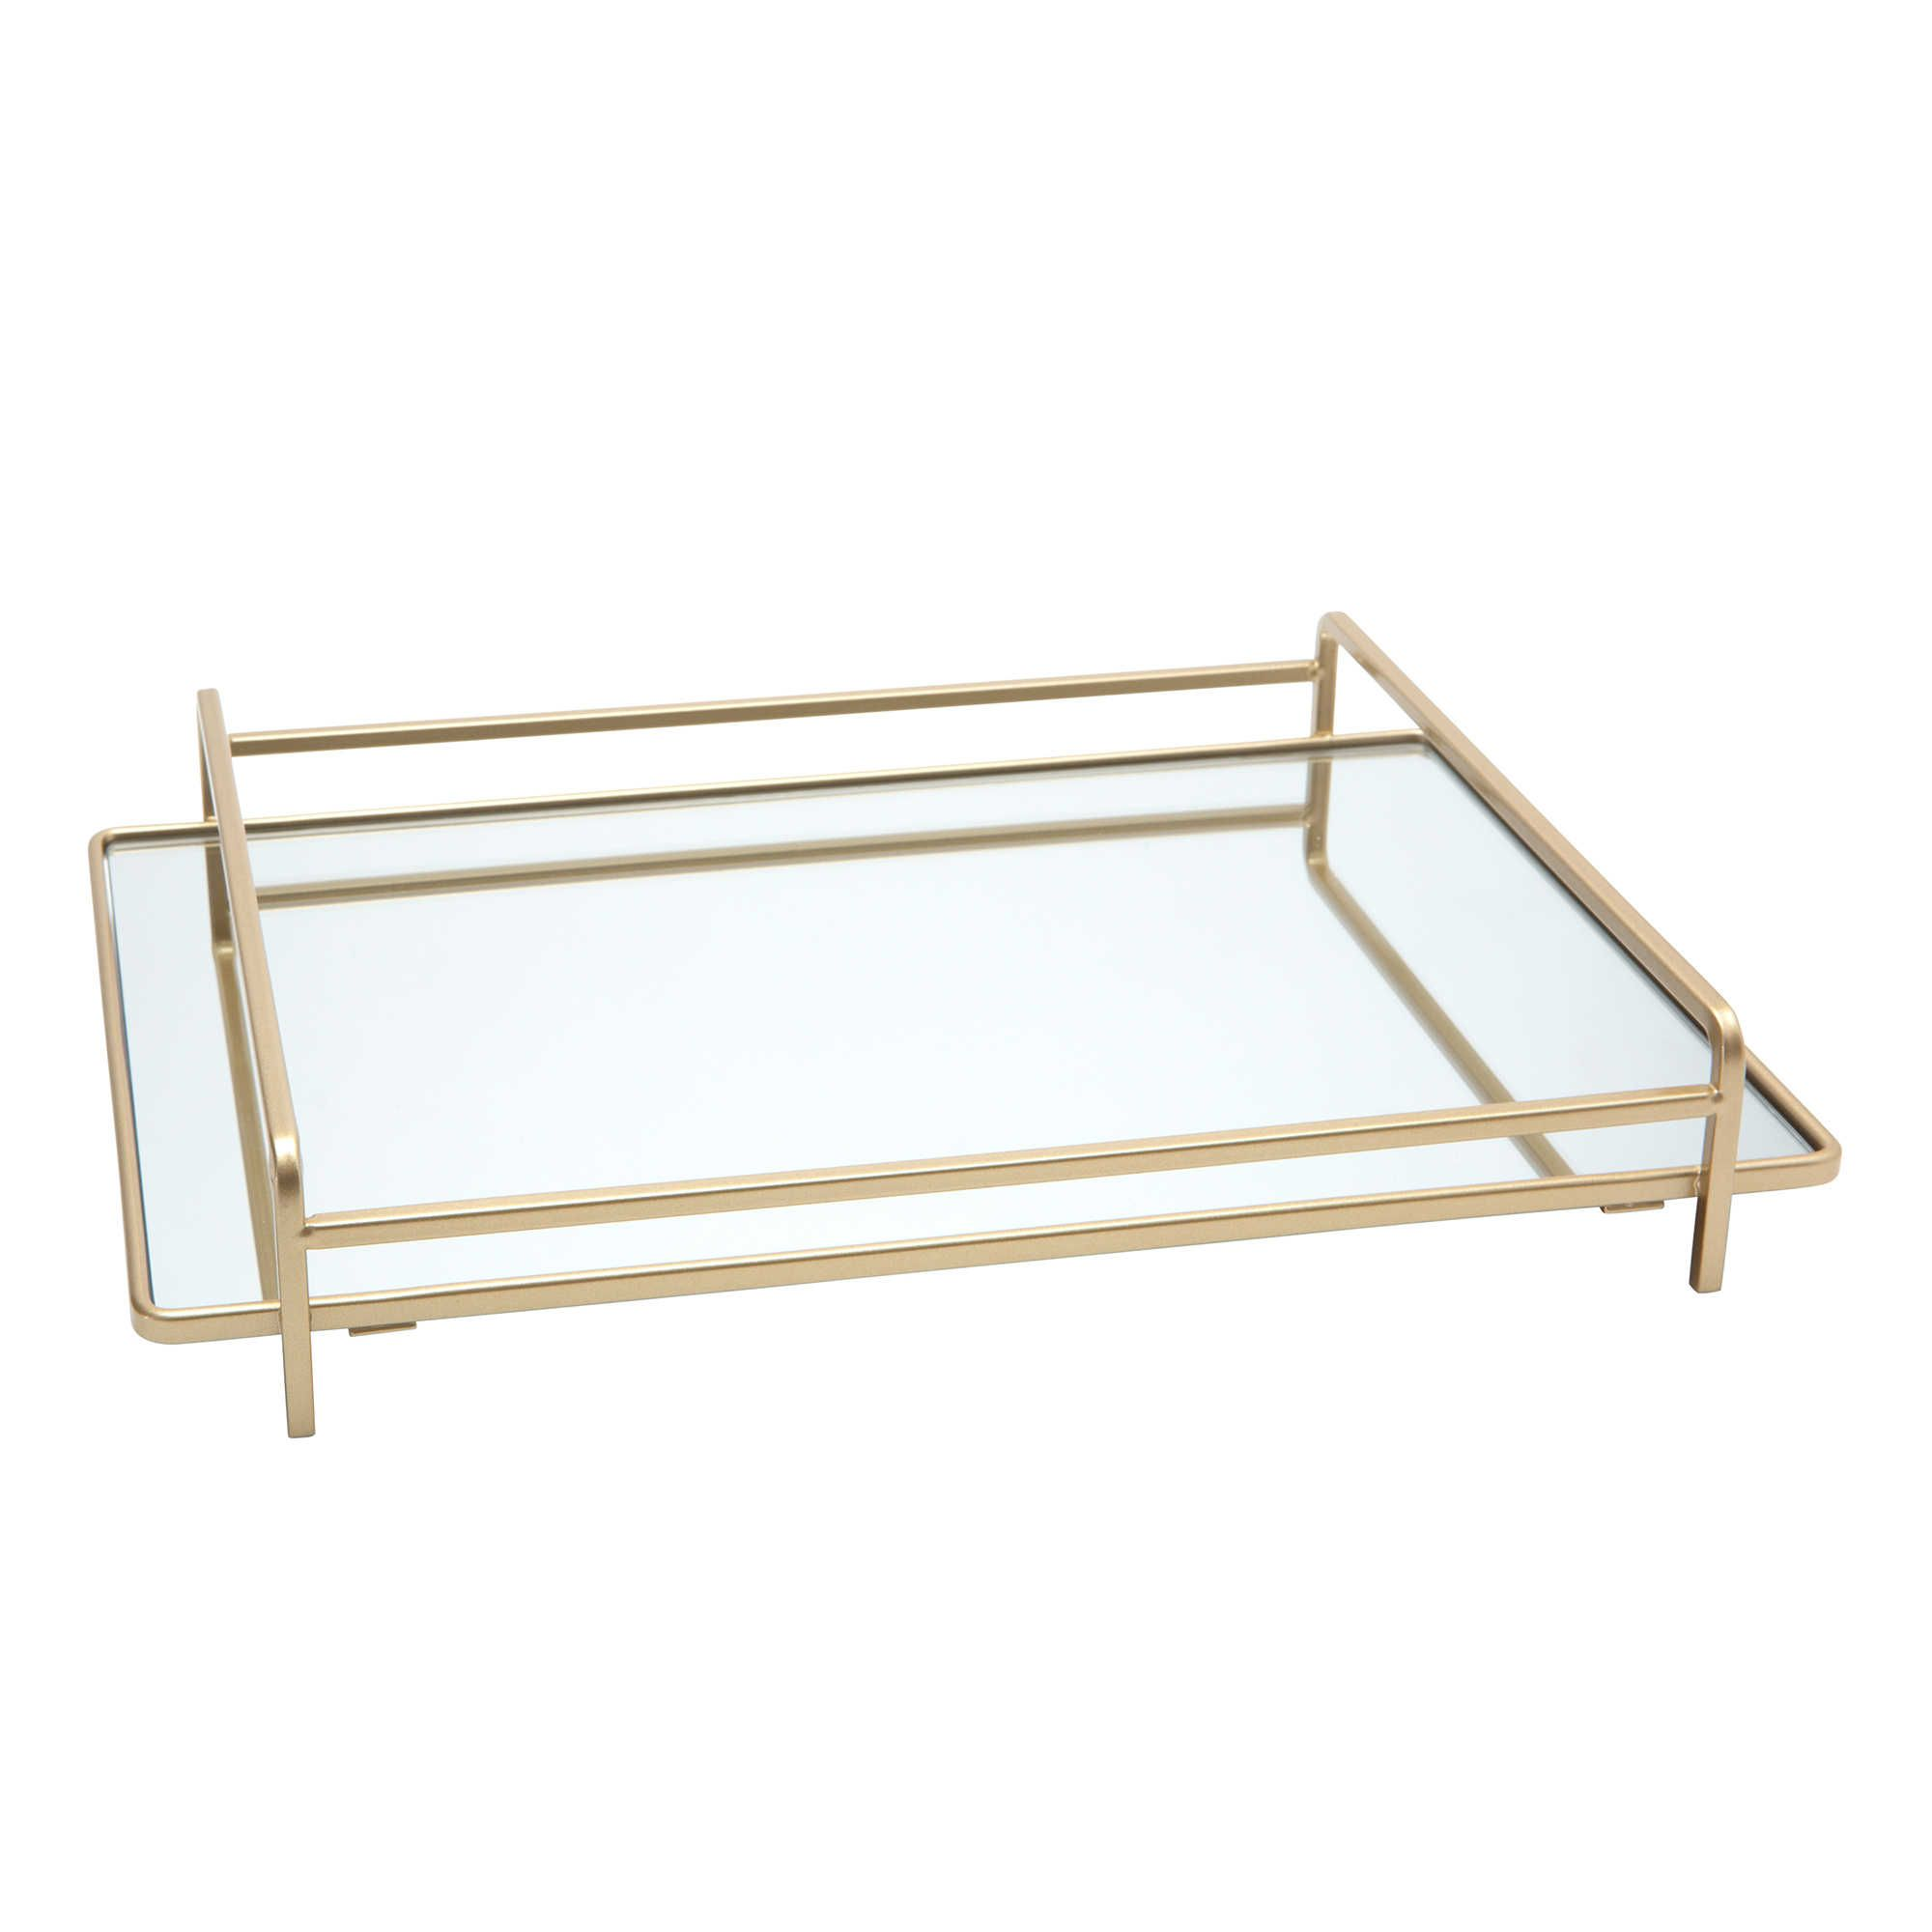 Home Details 4 Rail Vanity Mirror Tray in Gold